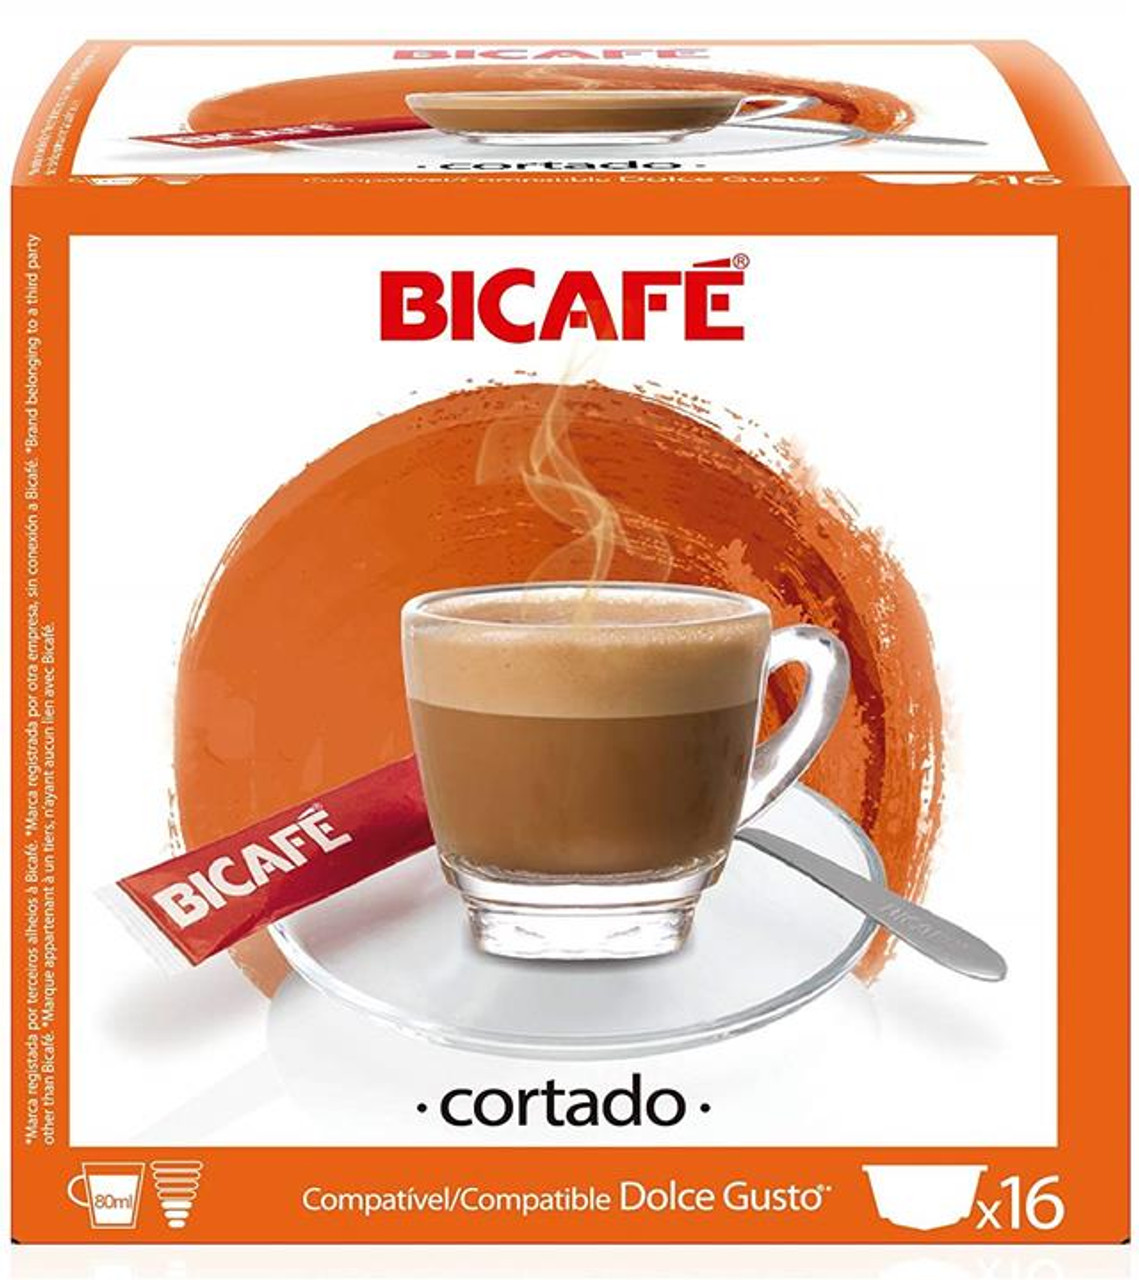 Compatible Coffee Capsules Bicafe Cortado For Dolce Gusto Pods 16 Capsule Packs